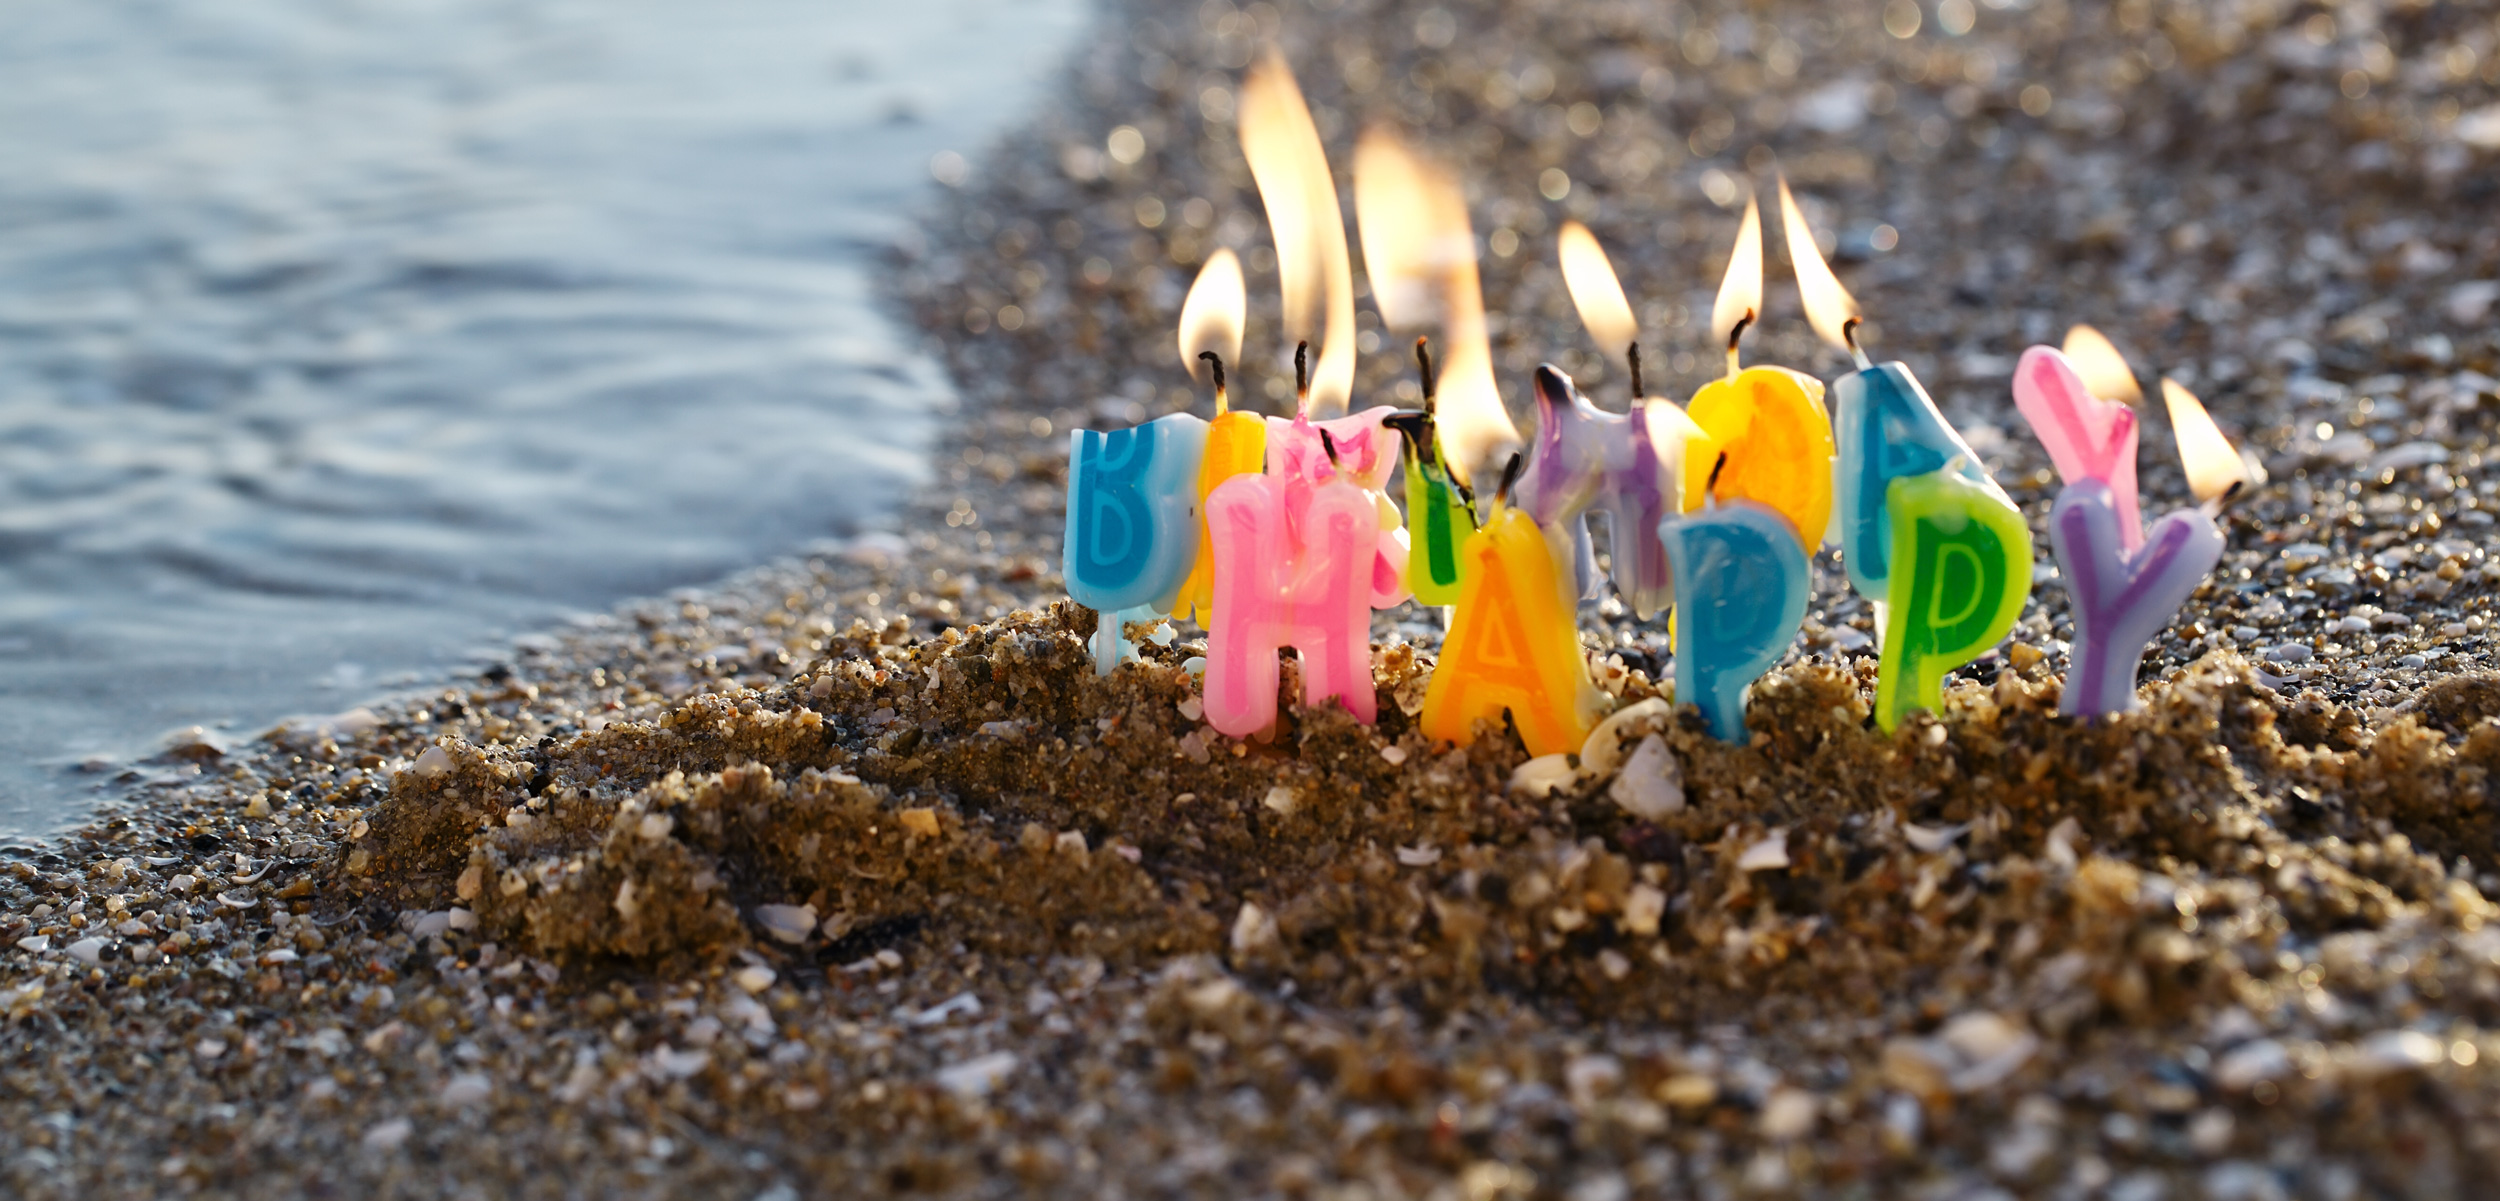 birthday candles on the beach